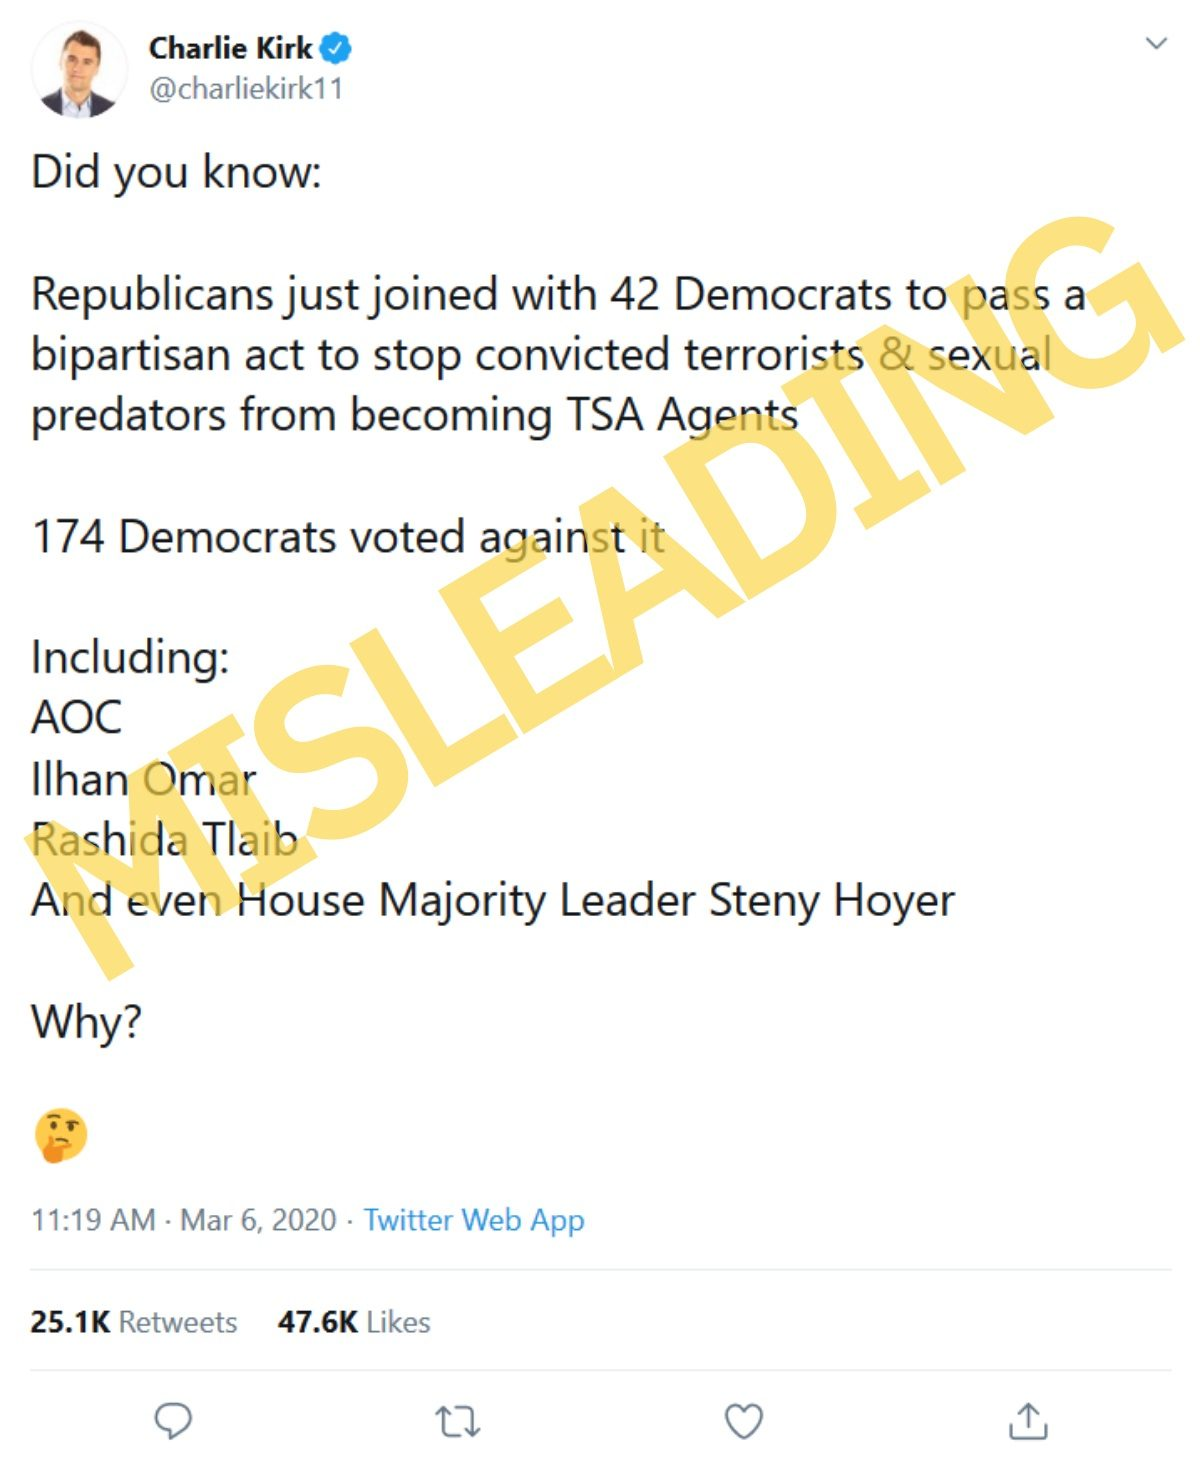 174 Democrats voted against